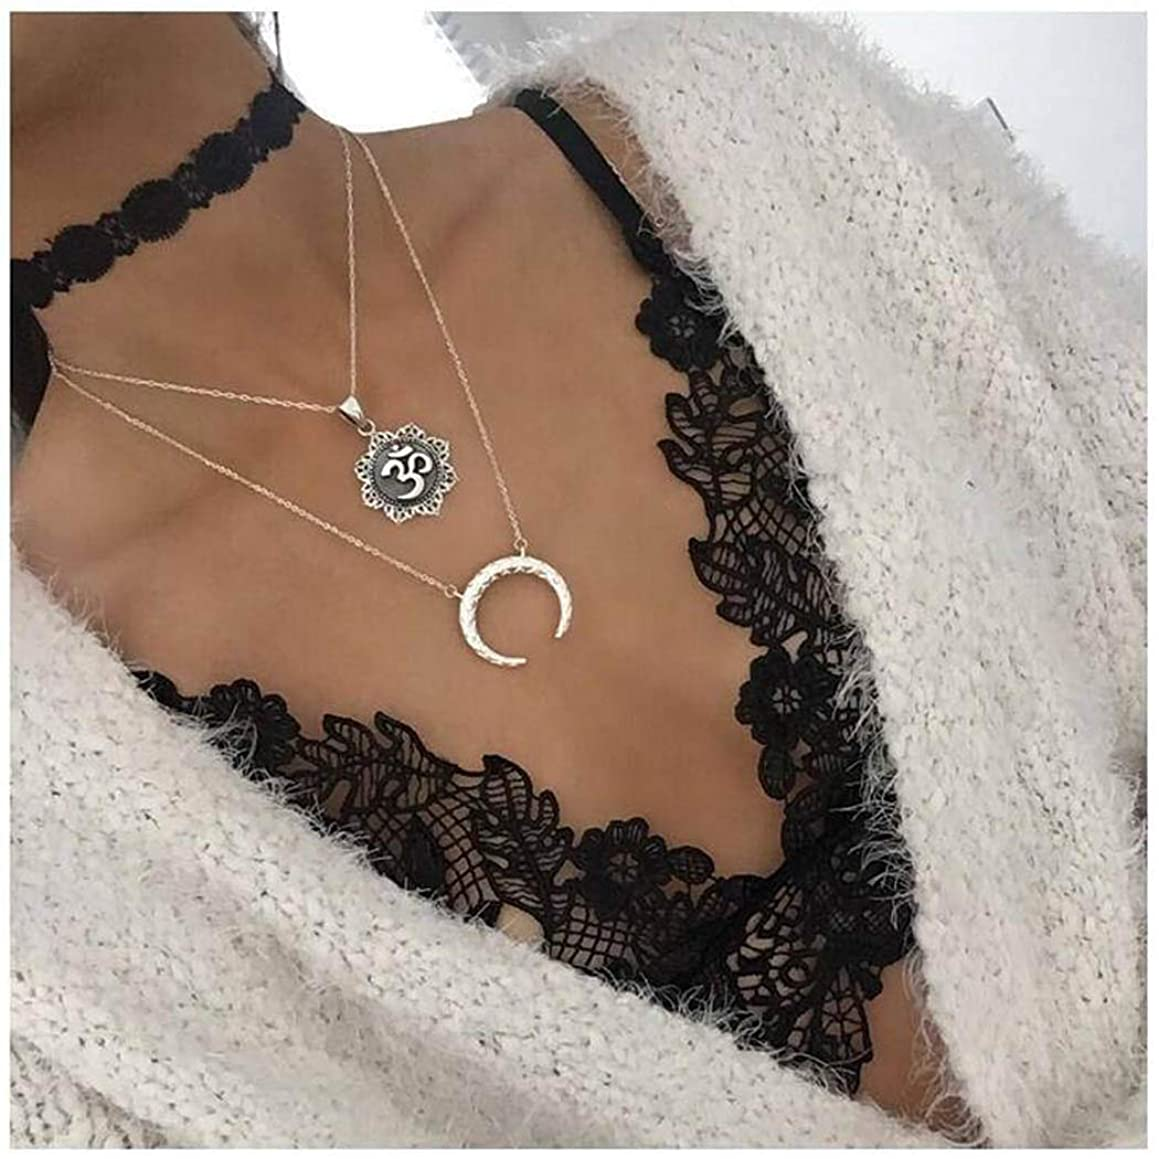 Bohemian Tree of Life Moon Pendant Necklace Fashion Crescent 3D Rune Flower Chain Adjustable Jewelry Silver Plated for Women and Girls (Silver A)